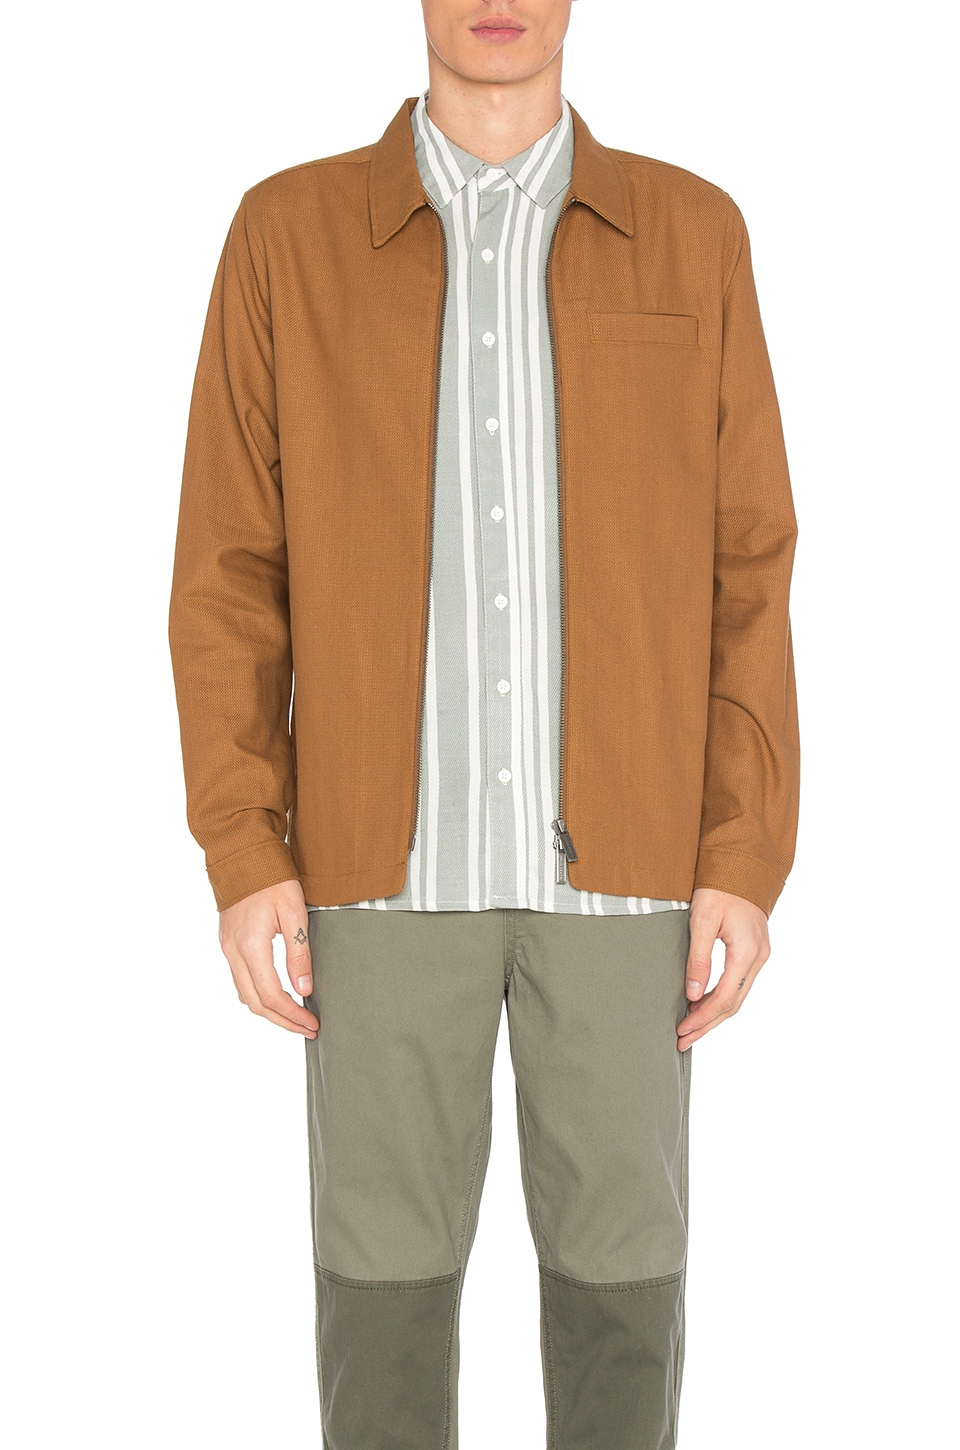 Hemmit Jacket by Native Youth